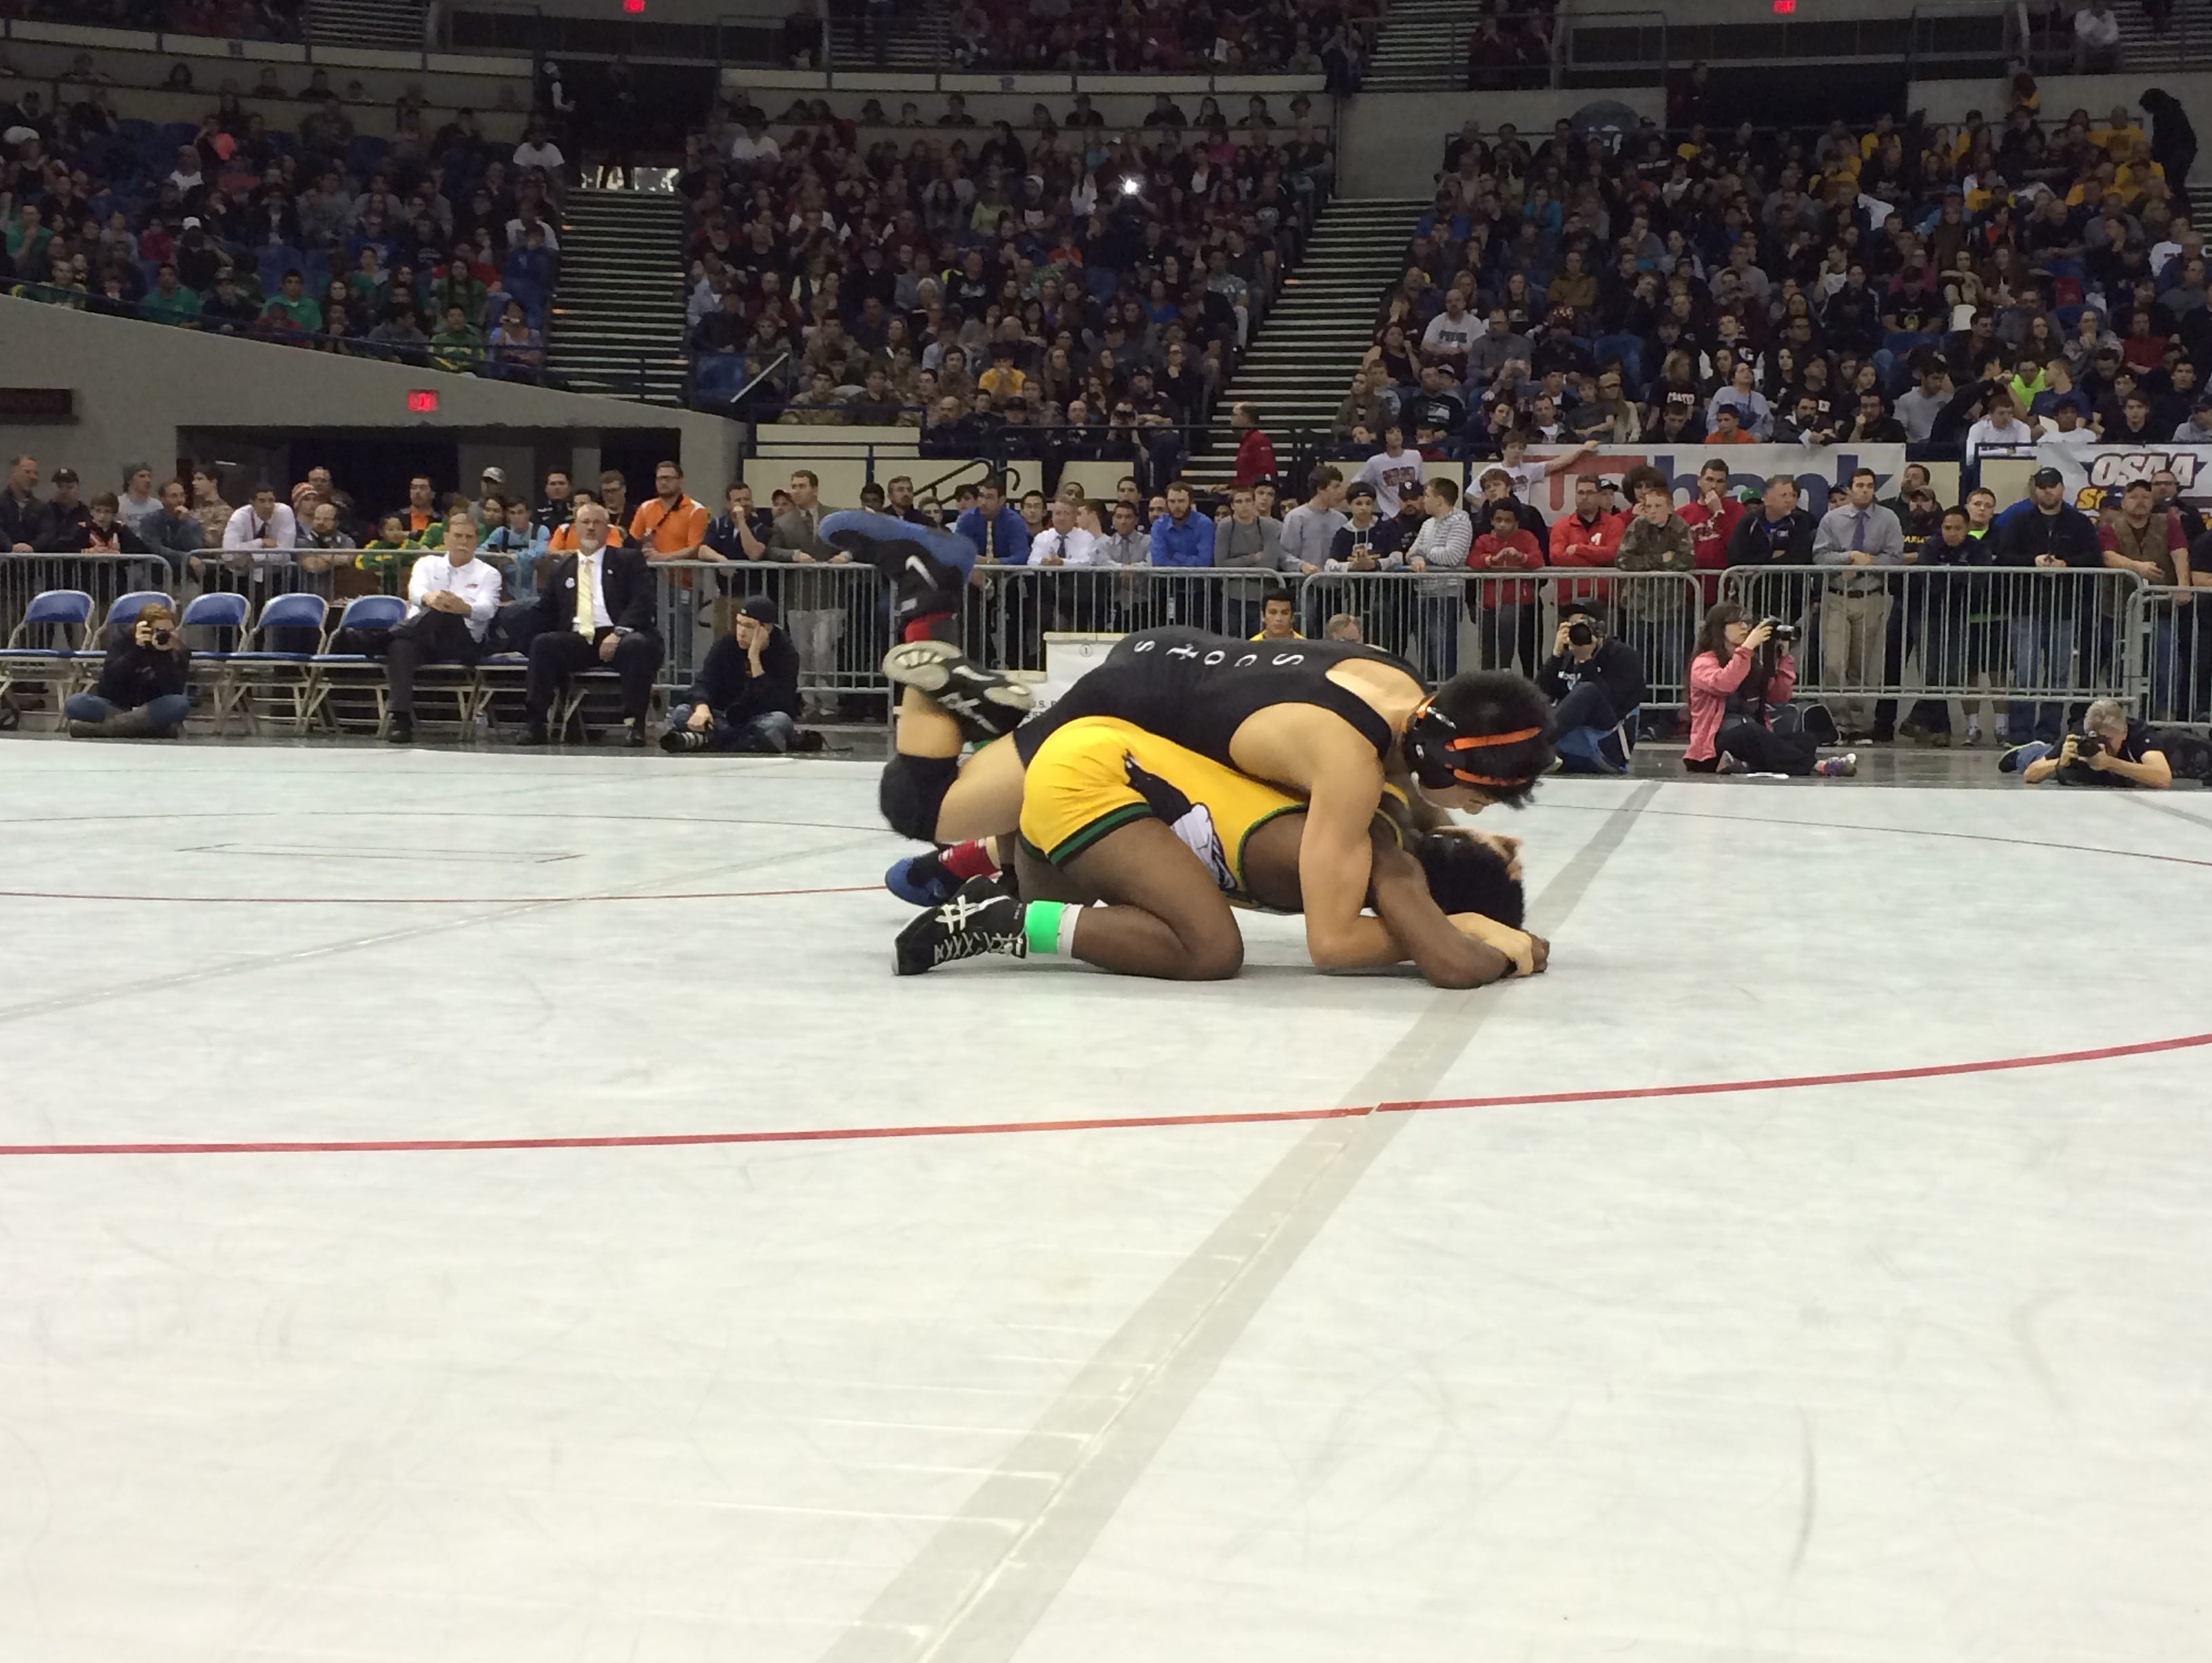 David Douglas' Andrew Cha (black) defeated Cleveland's Anteneh Demissie for the 106 pound title.